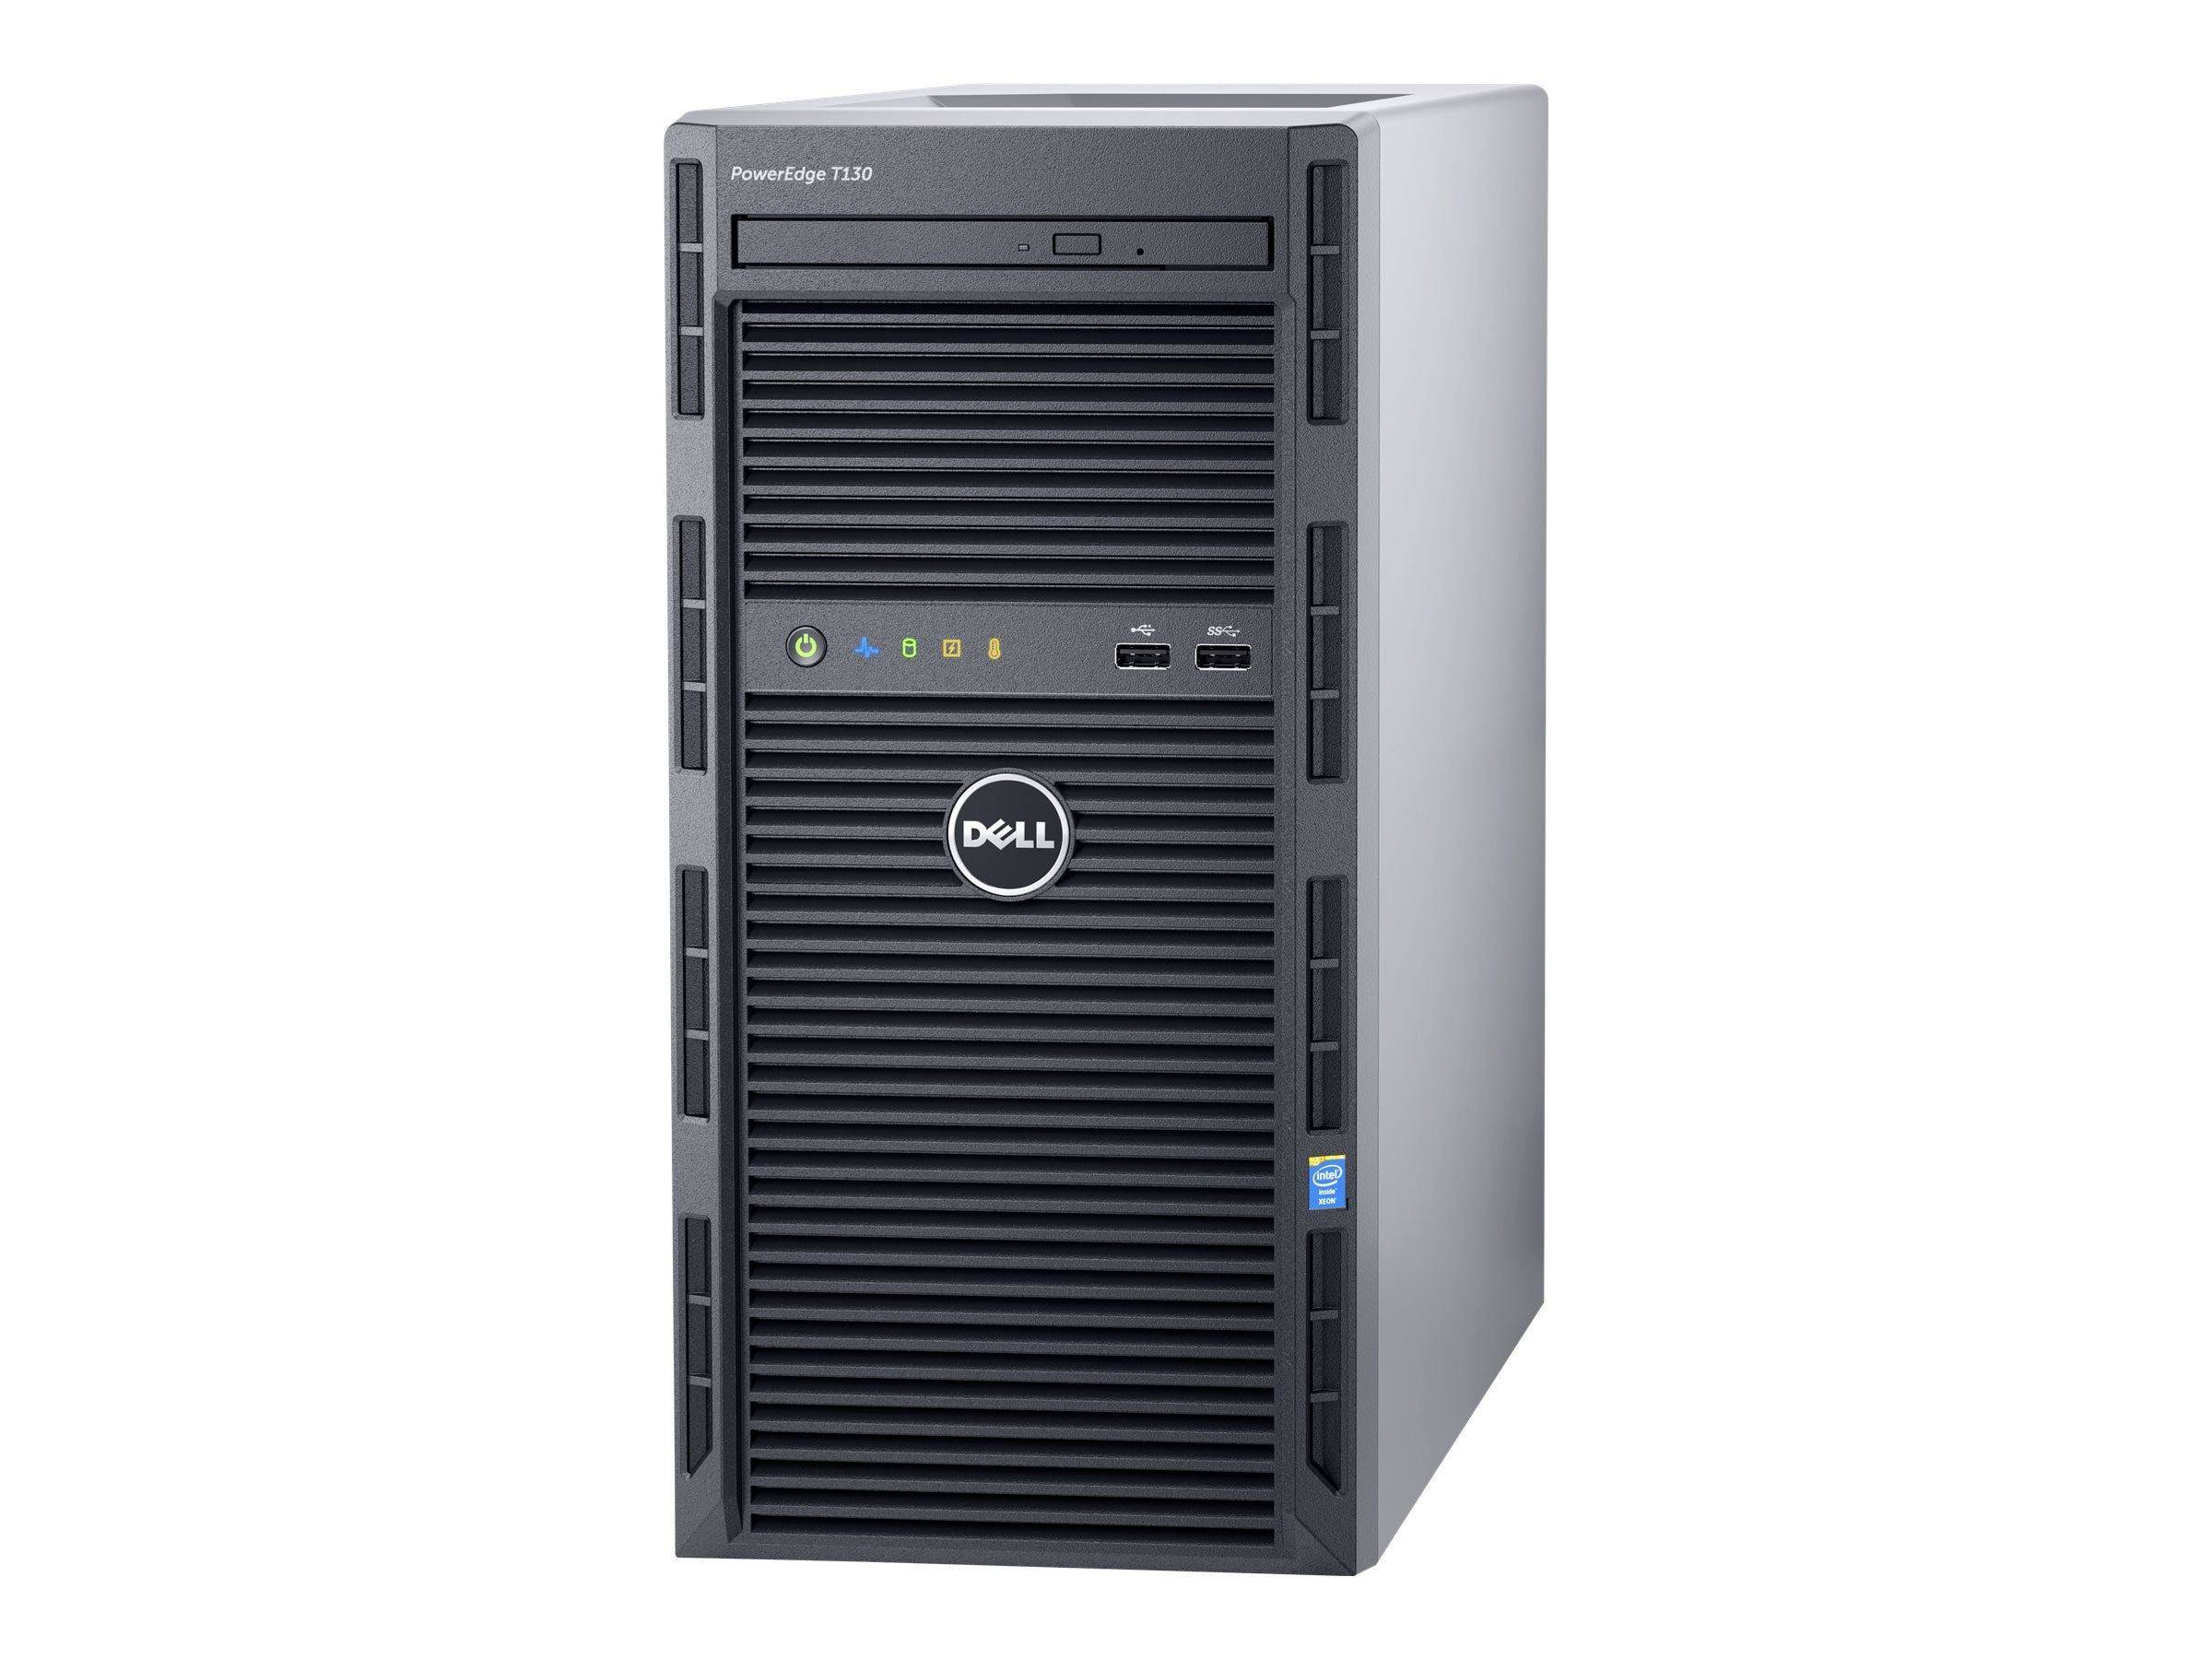 Dell PowerEdge T130 Tower Xeon QC E3-1240 v5 3.5GHz 8GB 1x1TB SATA 4x3.5 DC Bays H330 DVD 2xGbE